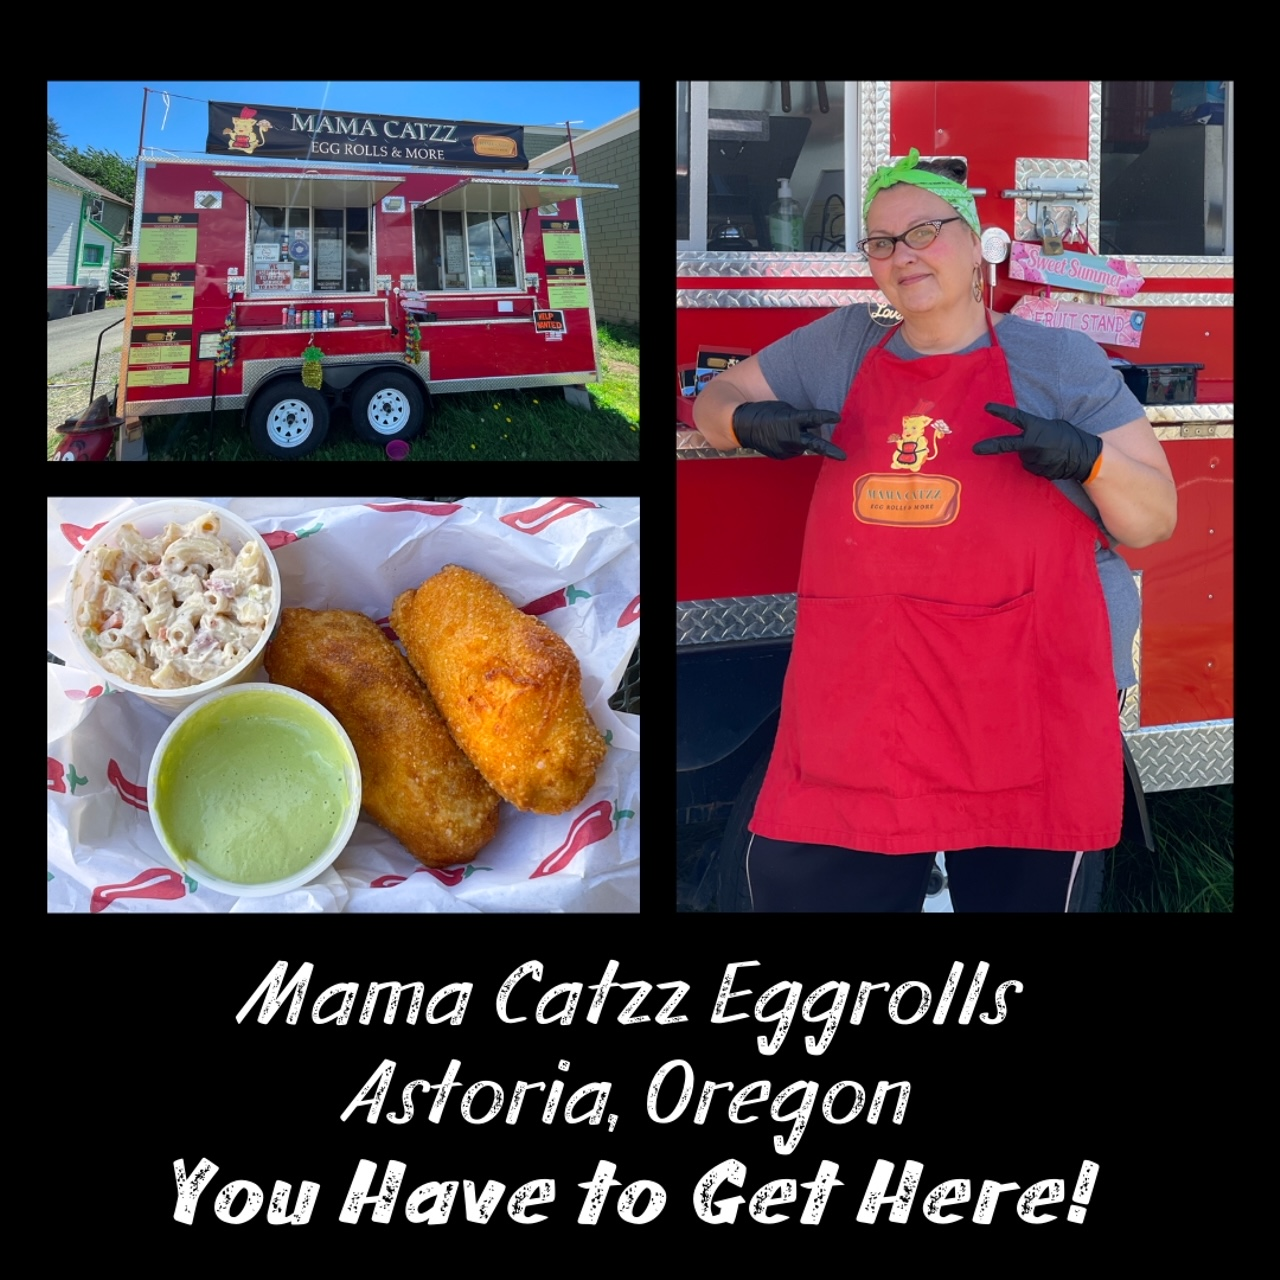 Mama Catzz Eggrolls an More Astoria, Oregon on the Oregon Coast - You Have to Get Here! Culinary Treasure Network